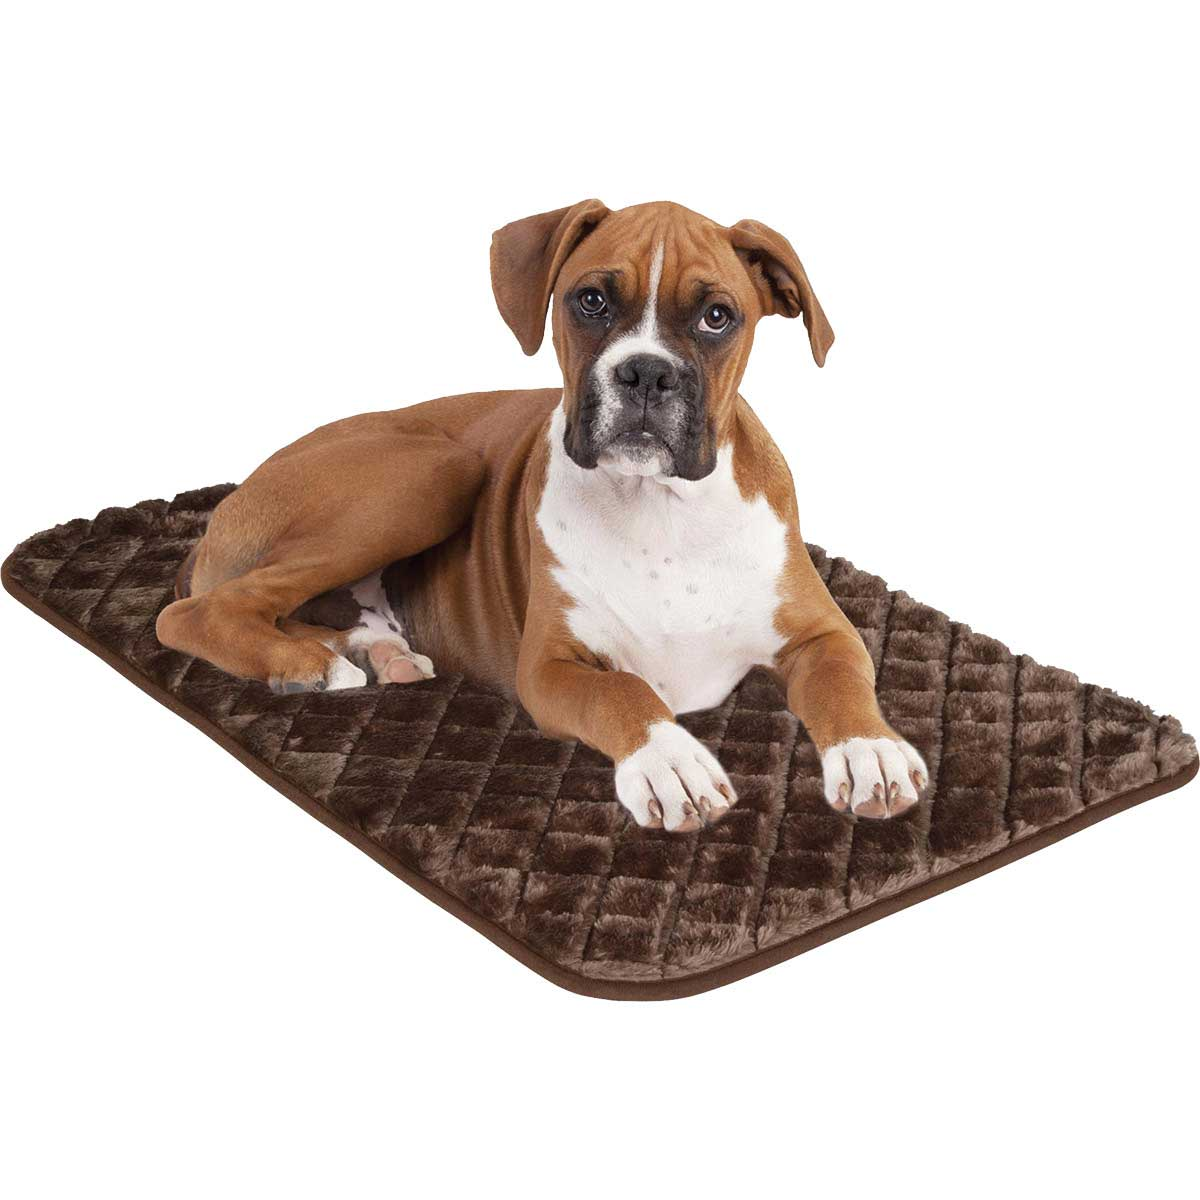 Snoozzy Sleeper Chocolate Pet Mat - 35 inches by 21.5 inches available at Ryan's Pet Supplies